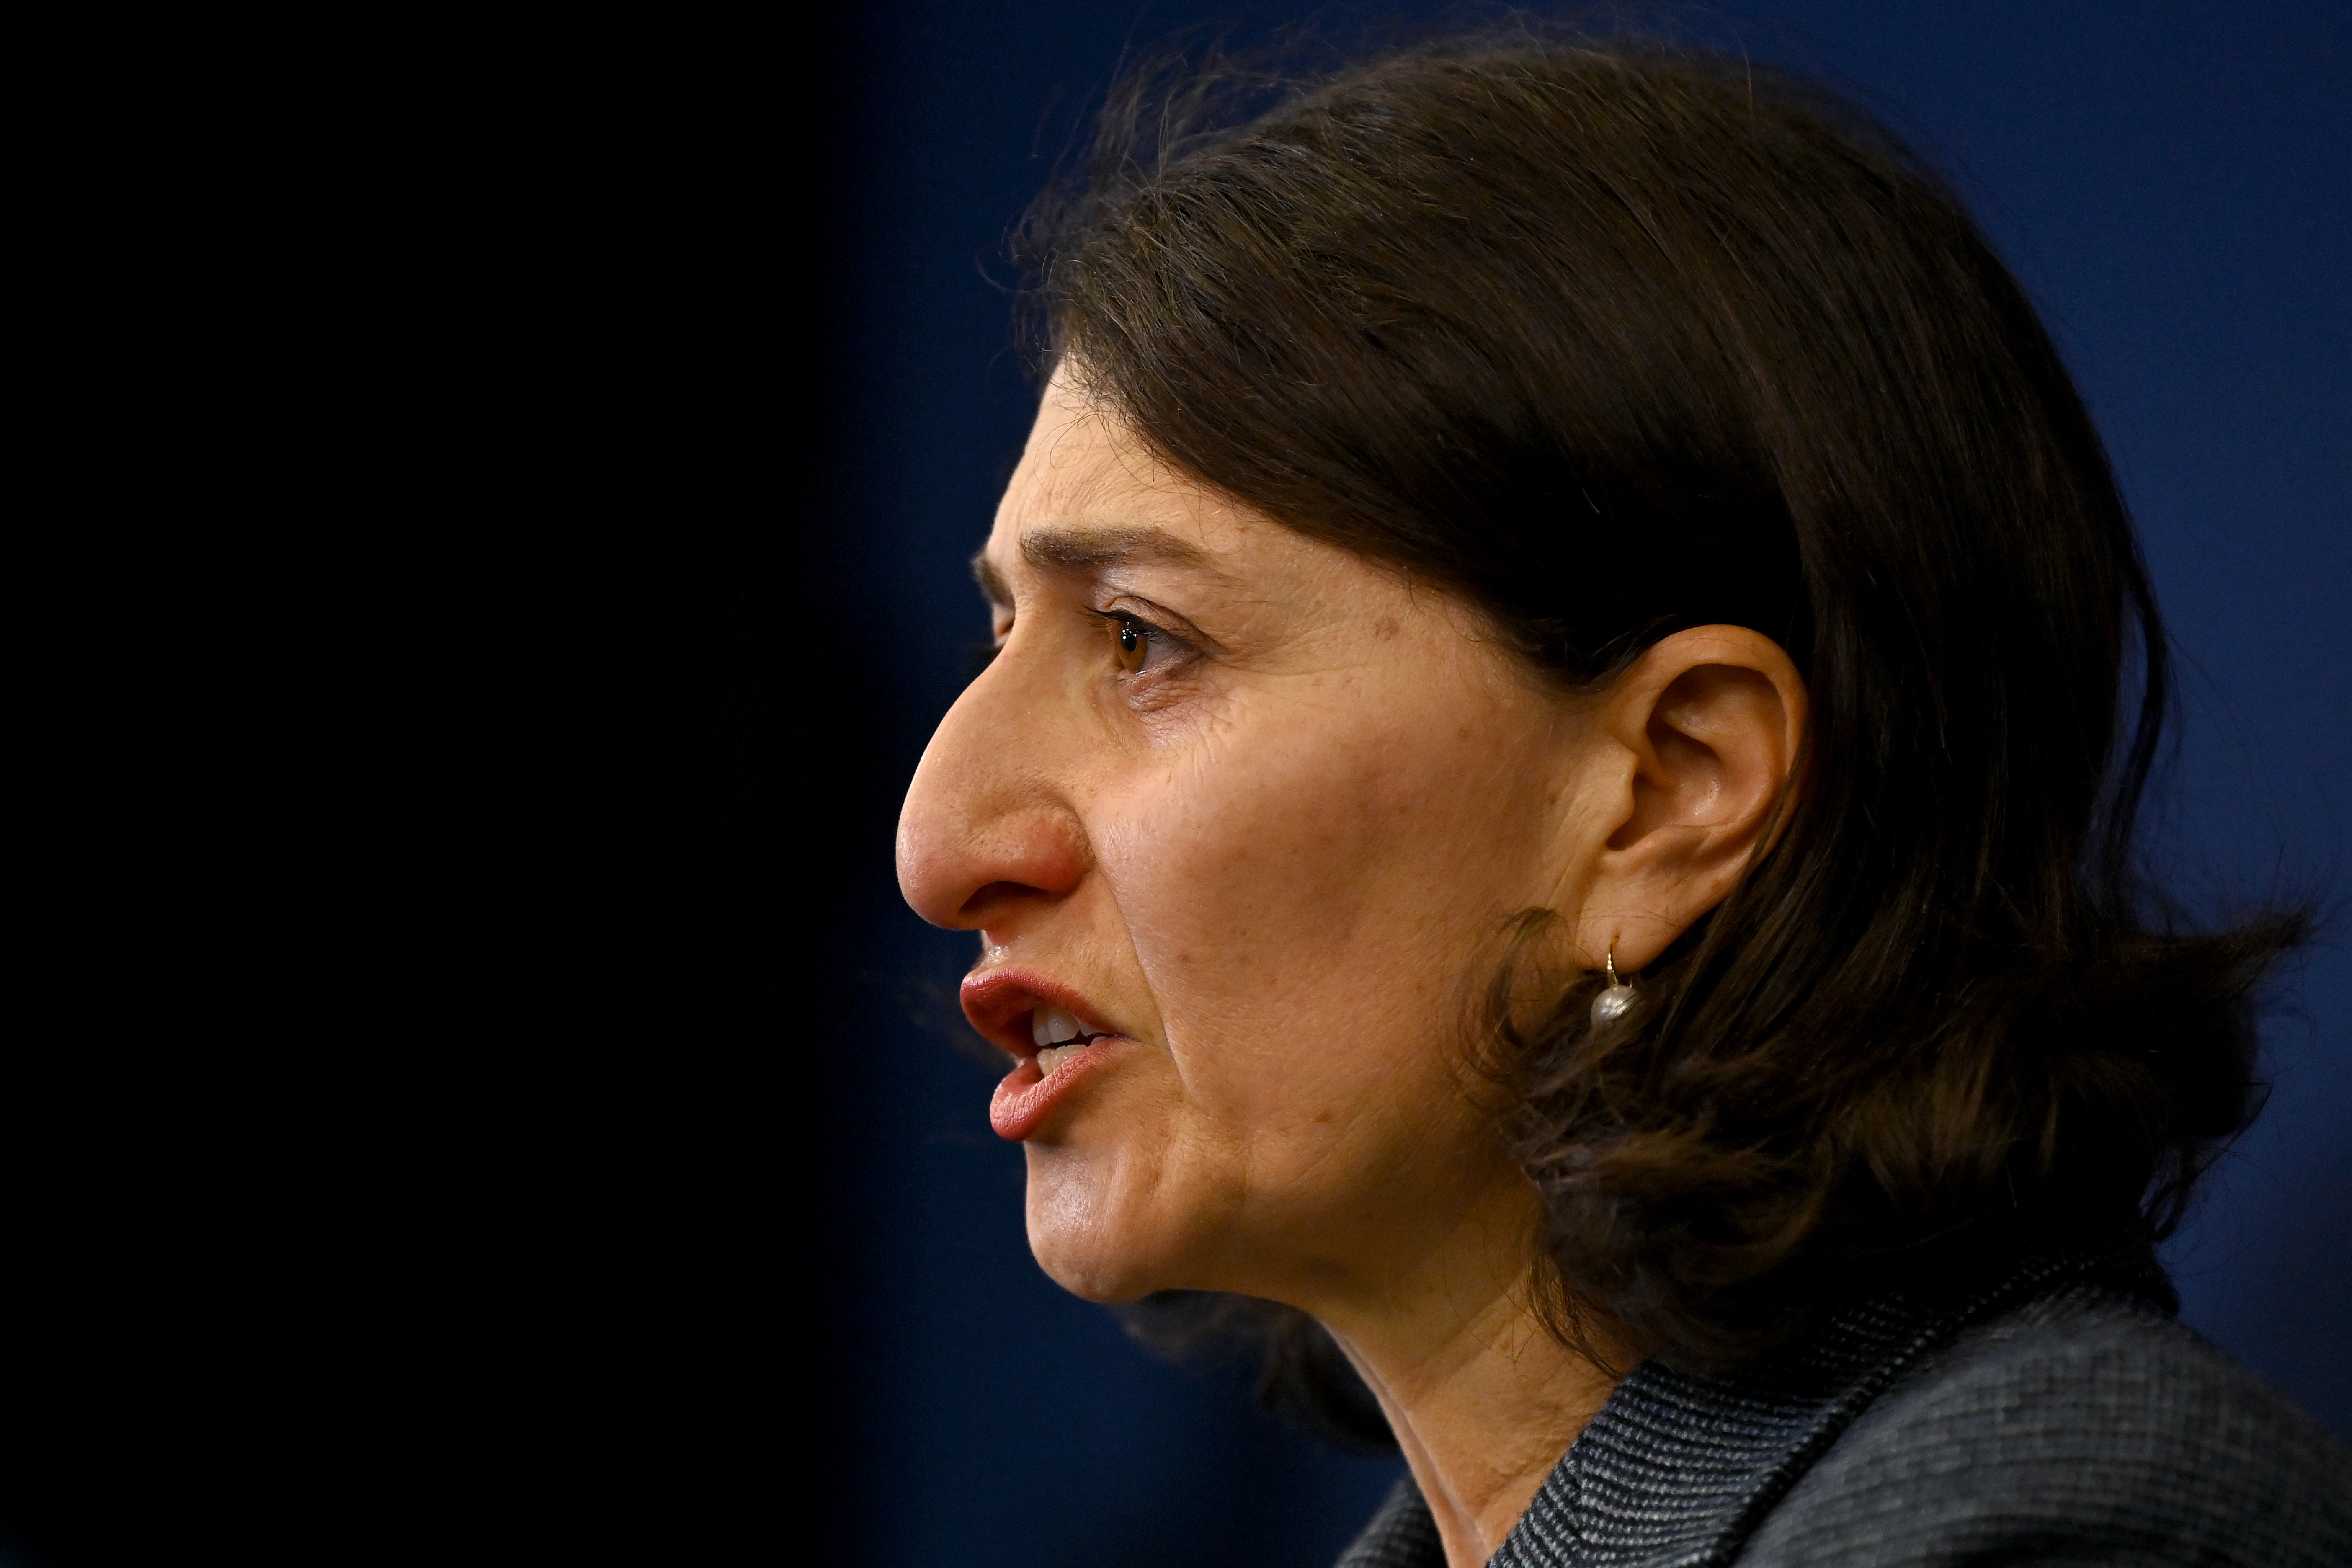 Ms Berejiklian took aim at ICAC over the timing of its announcement to investigate.